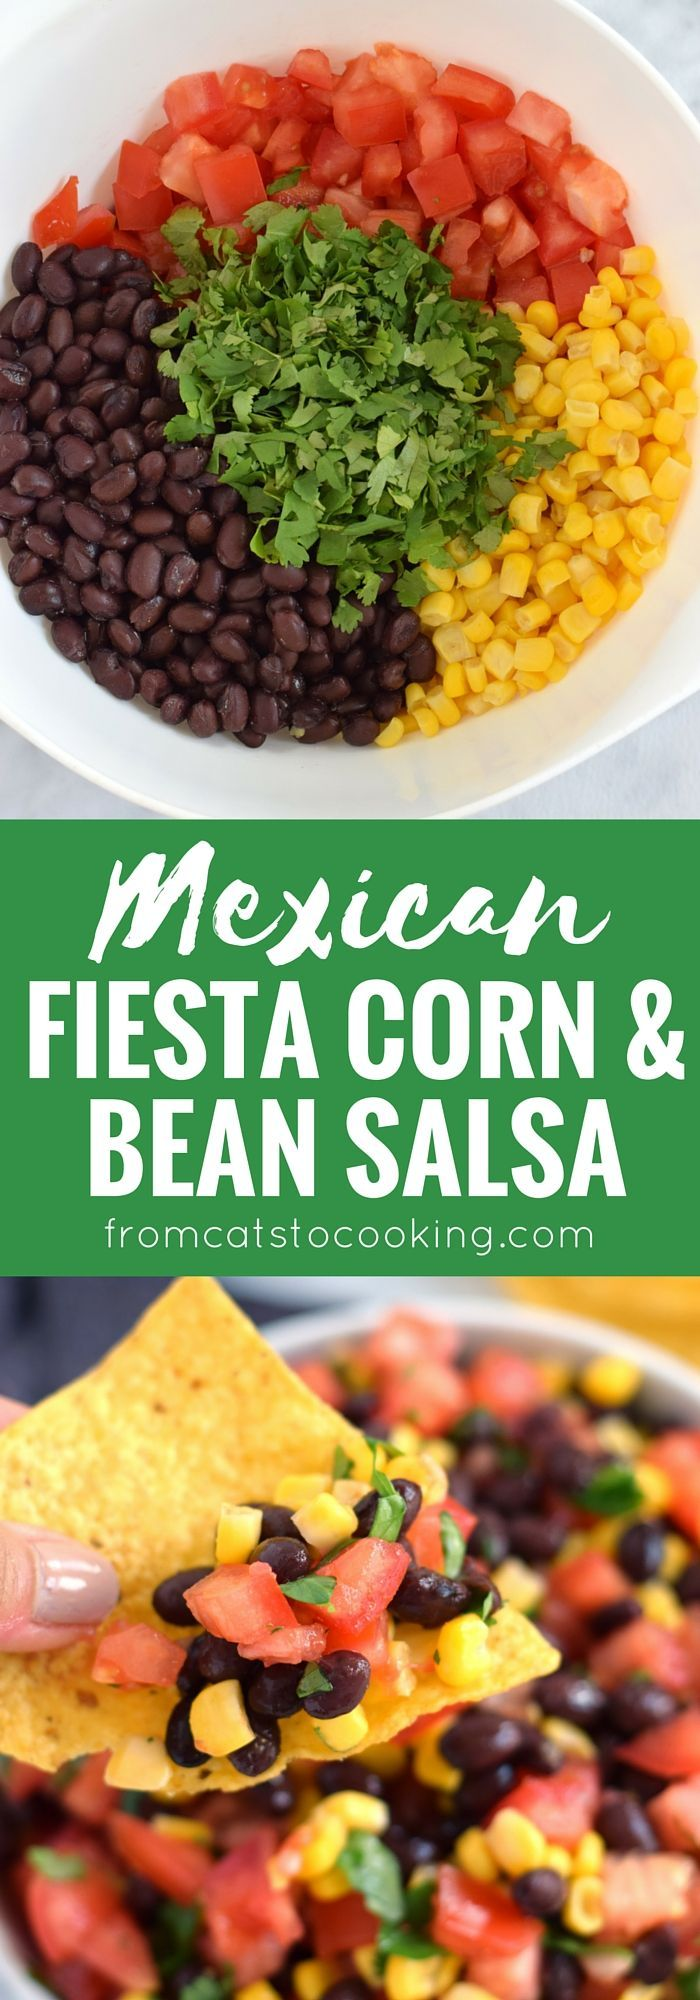 A super easy, bright and fresh Mexican Fiesta Corn & Bean Salsa recipe that takes only 10 minutes to make! Is gluten free, vegetarian, vegan and perfect for the spring and summer months. // http://isabeleats.com